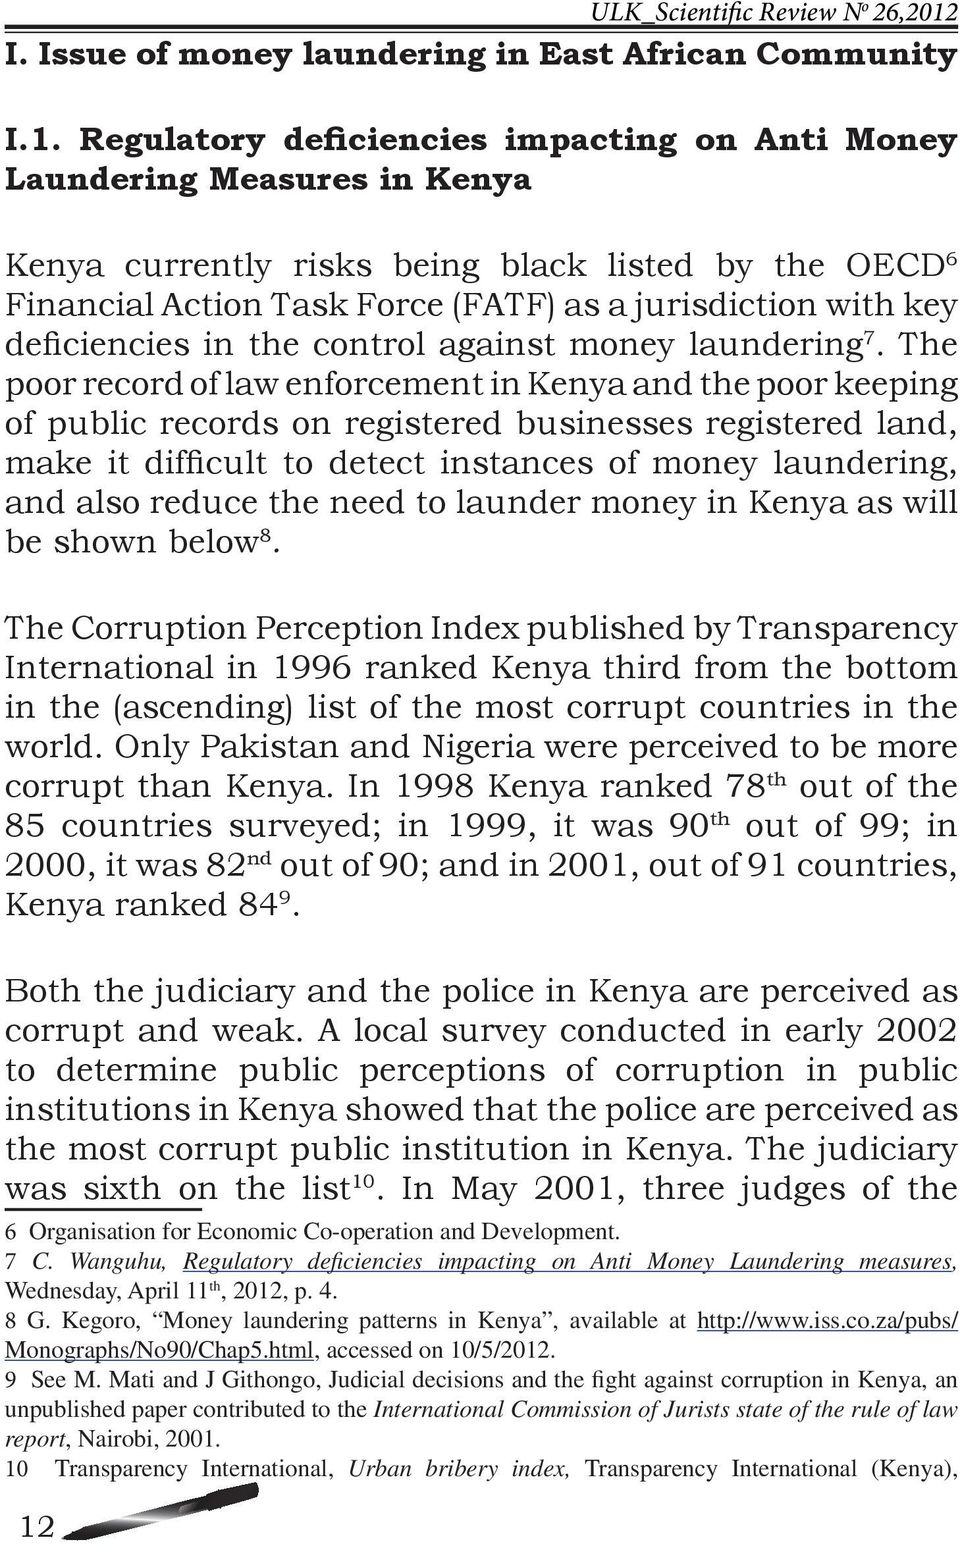 deficiencies in the control against money laundering 7.